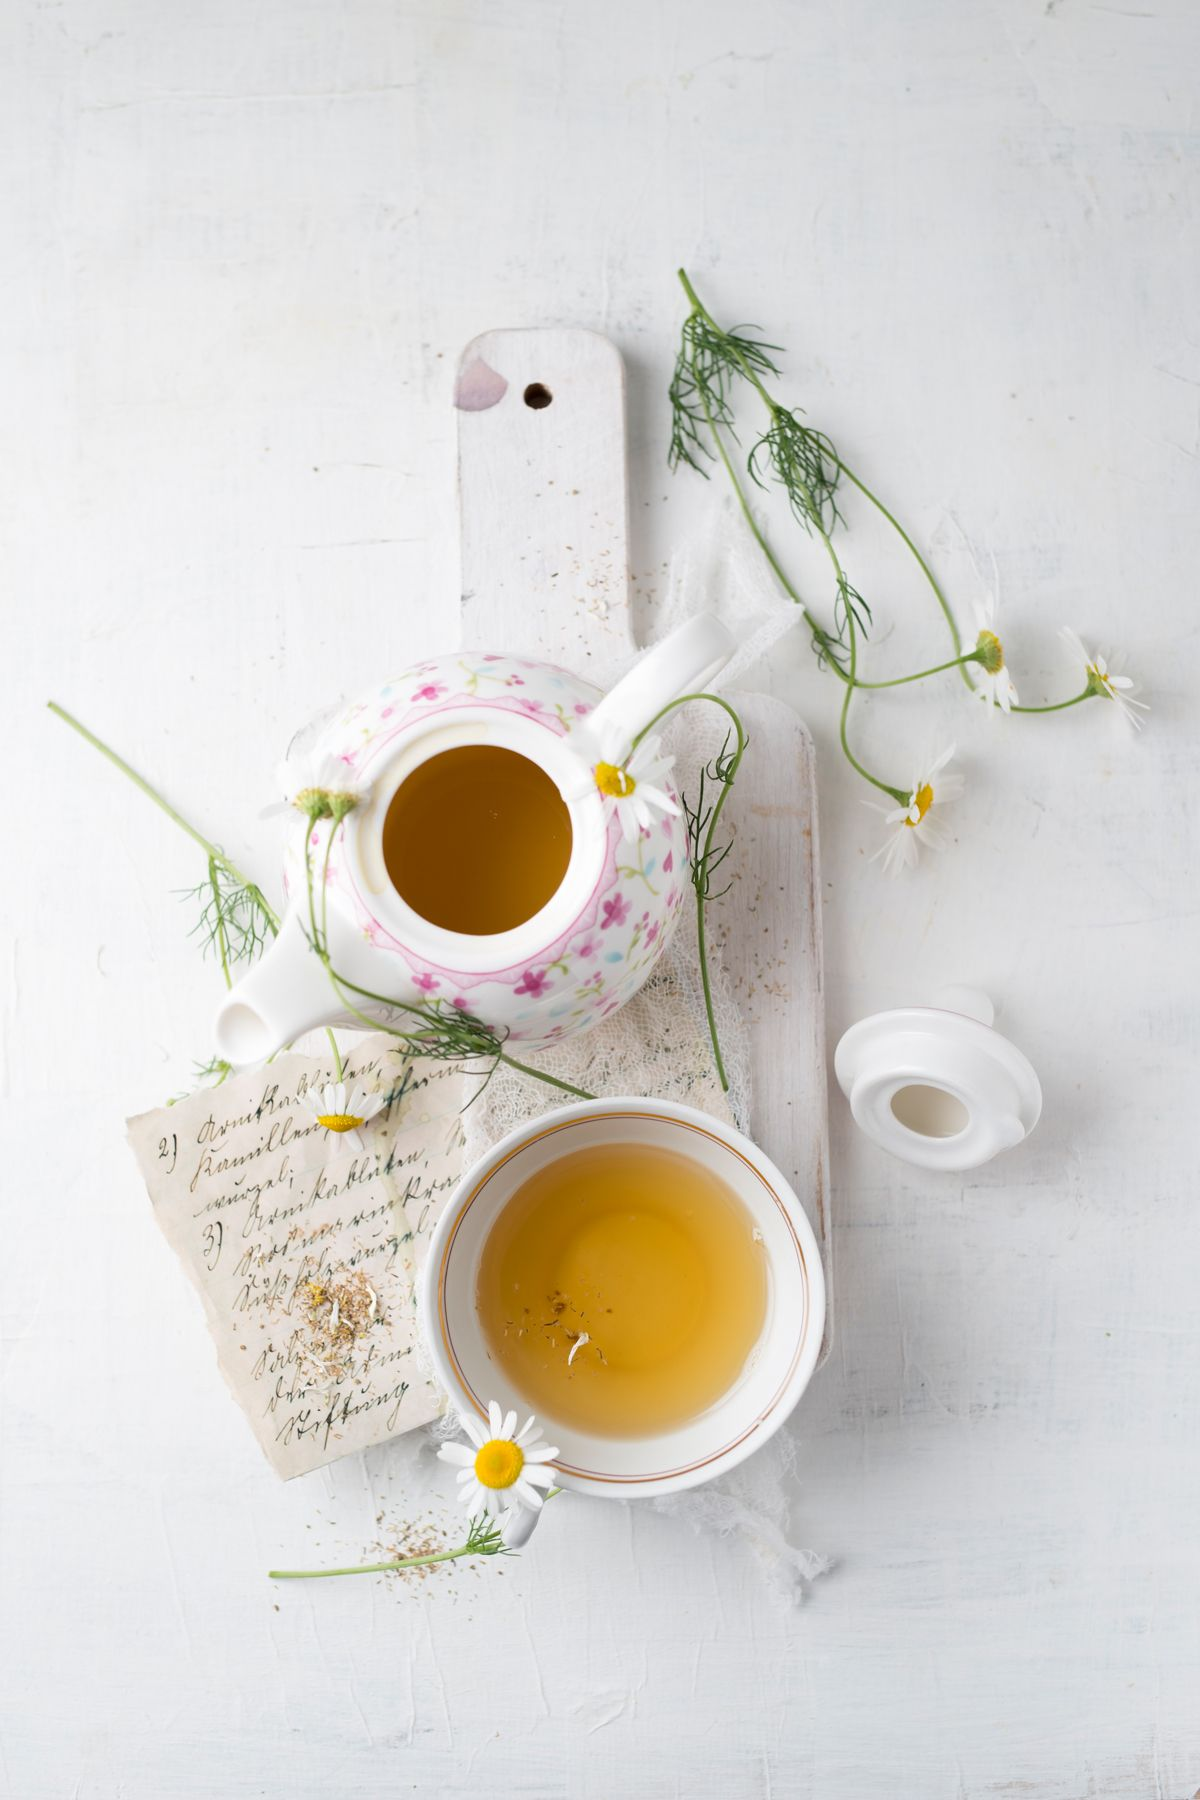 The Dark Side Of 'Detox Teas': Is Your 'Slimming' Tea A Laxative Dressed Up As A Health Drink?